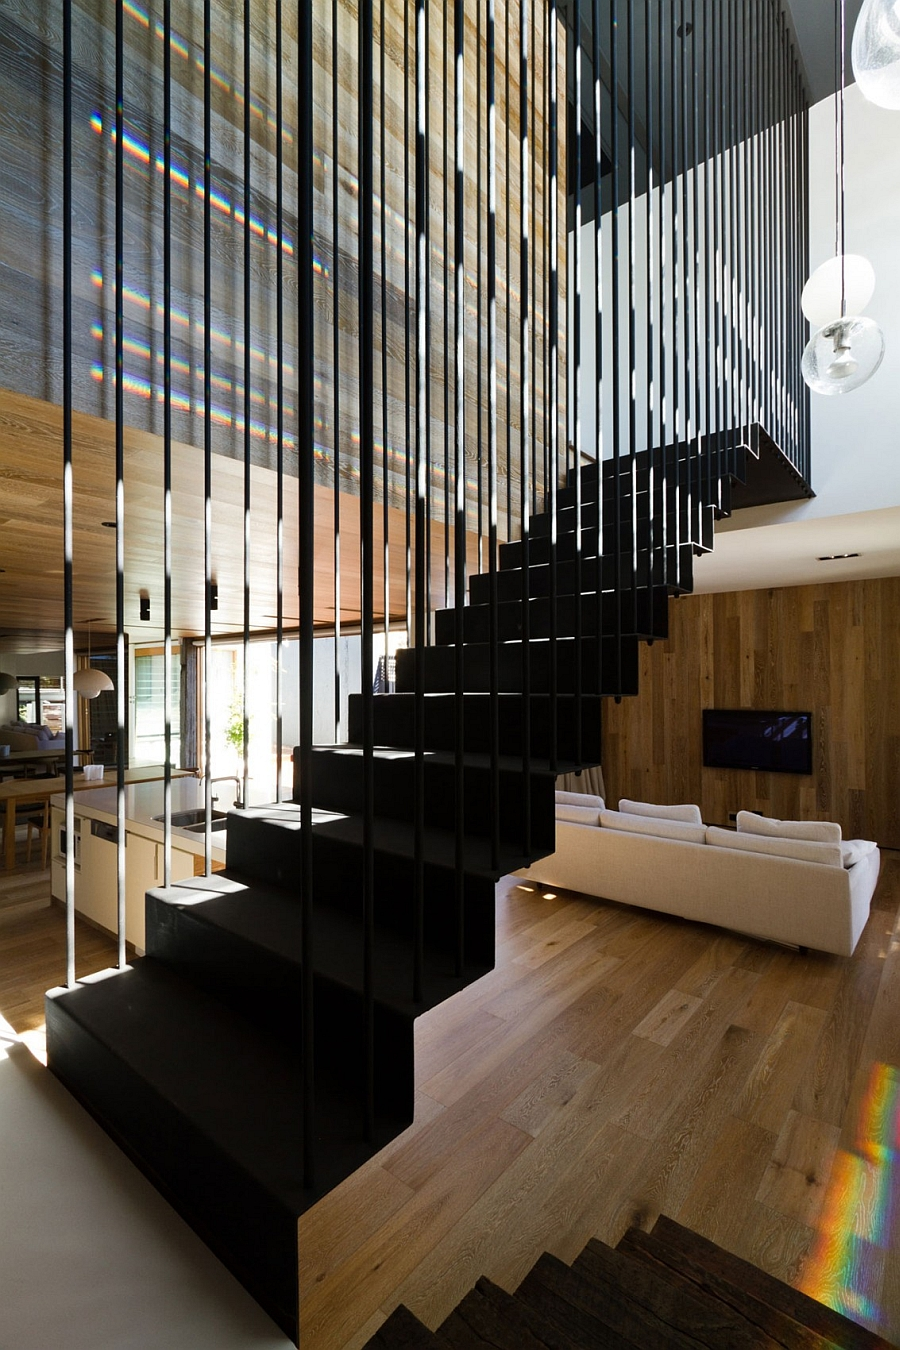 Inventive staircase design that is visually airy